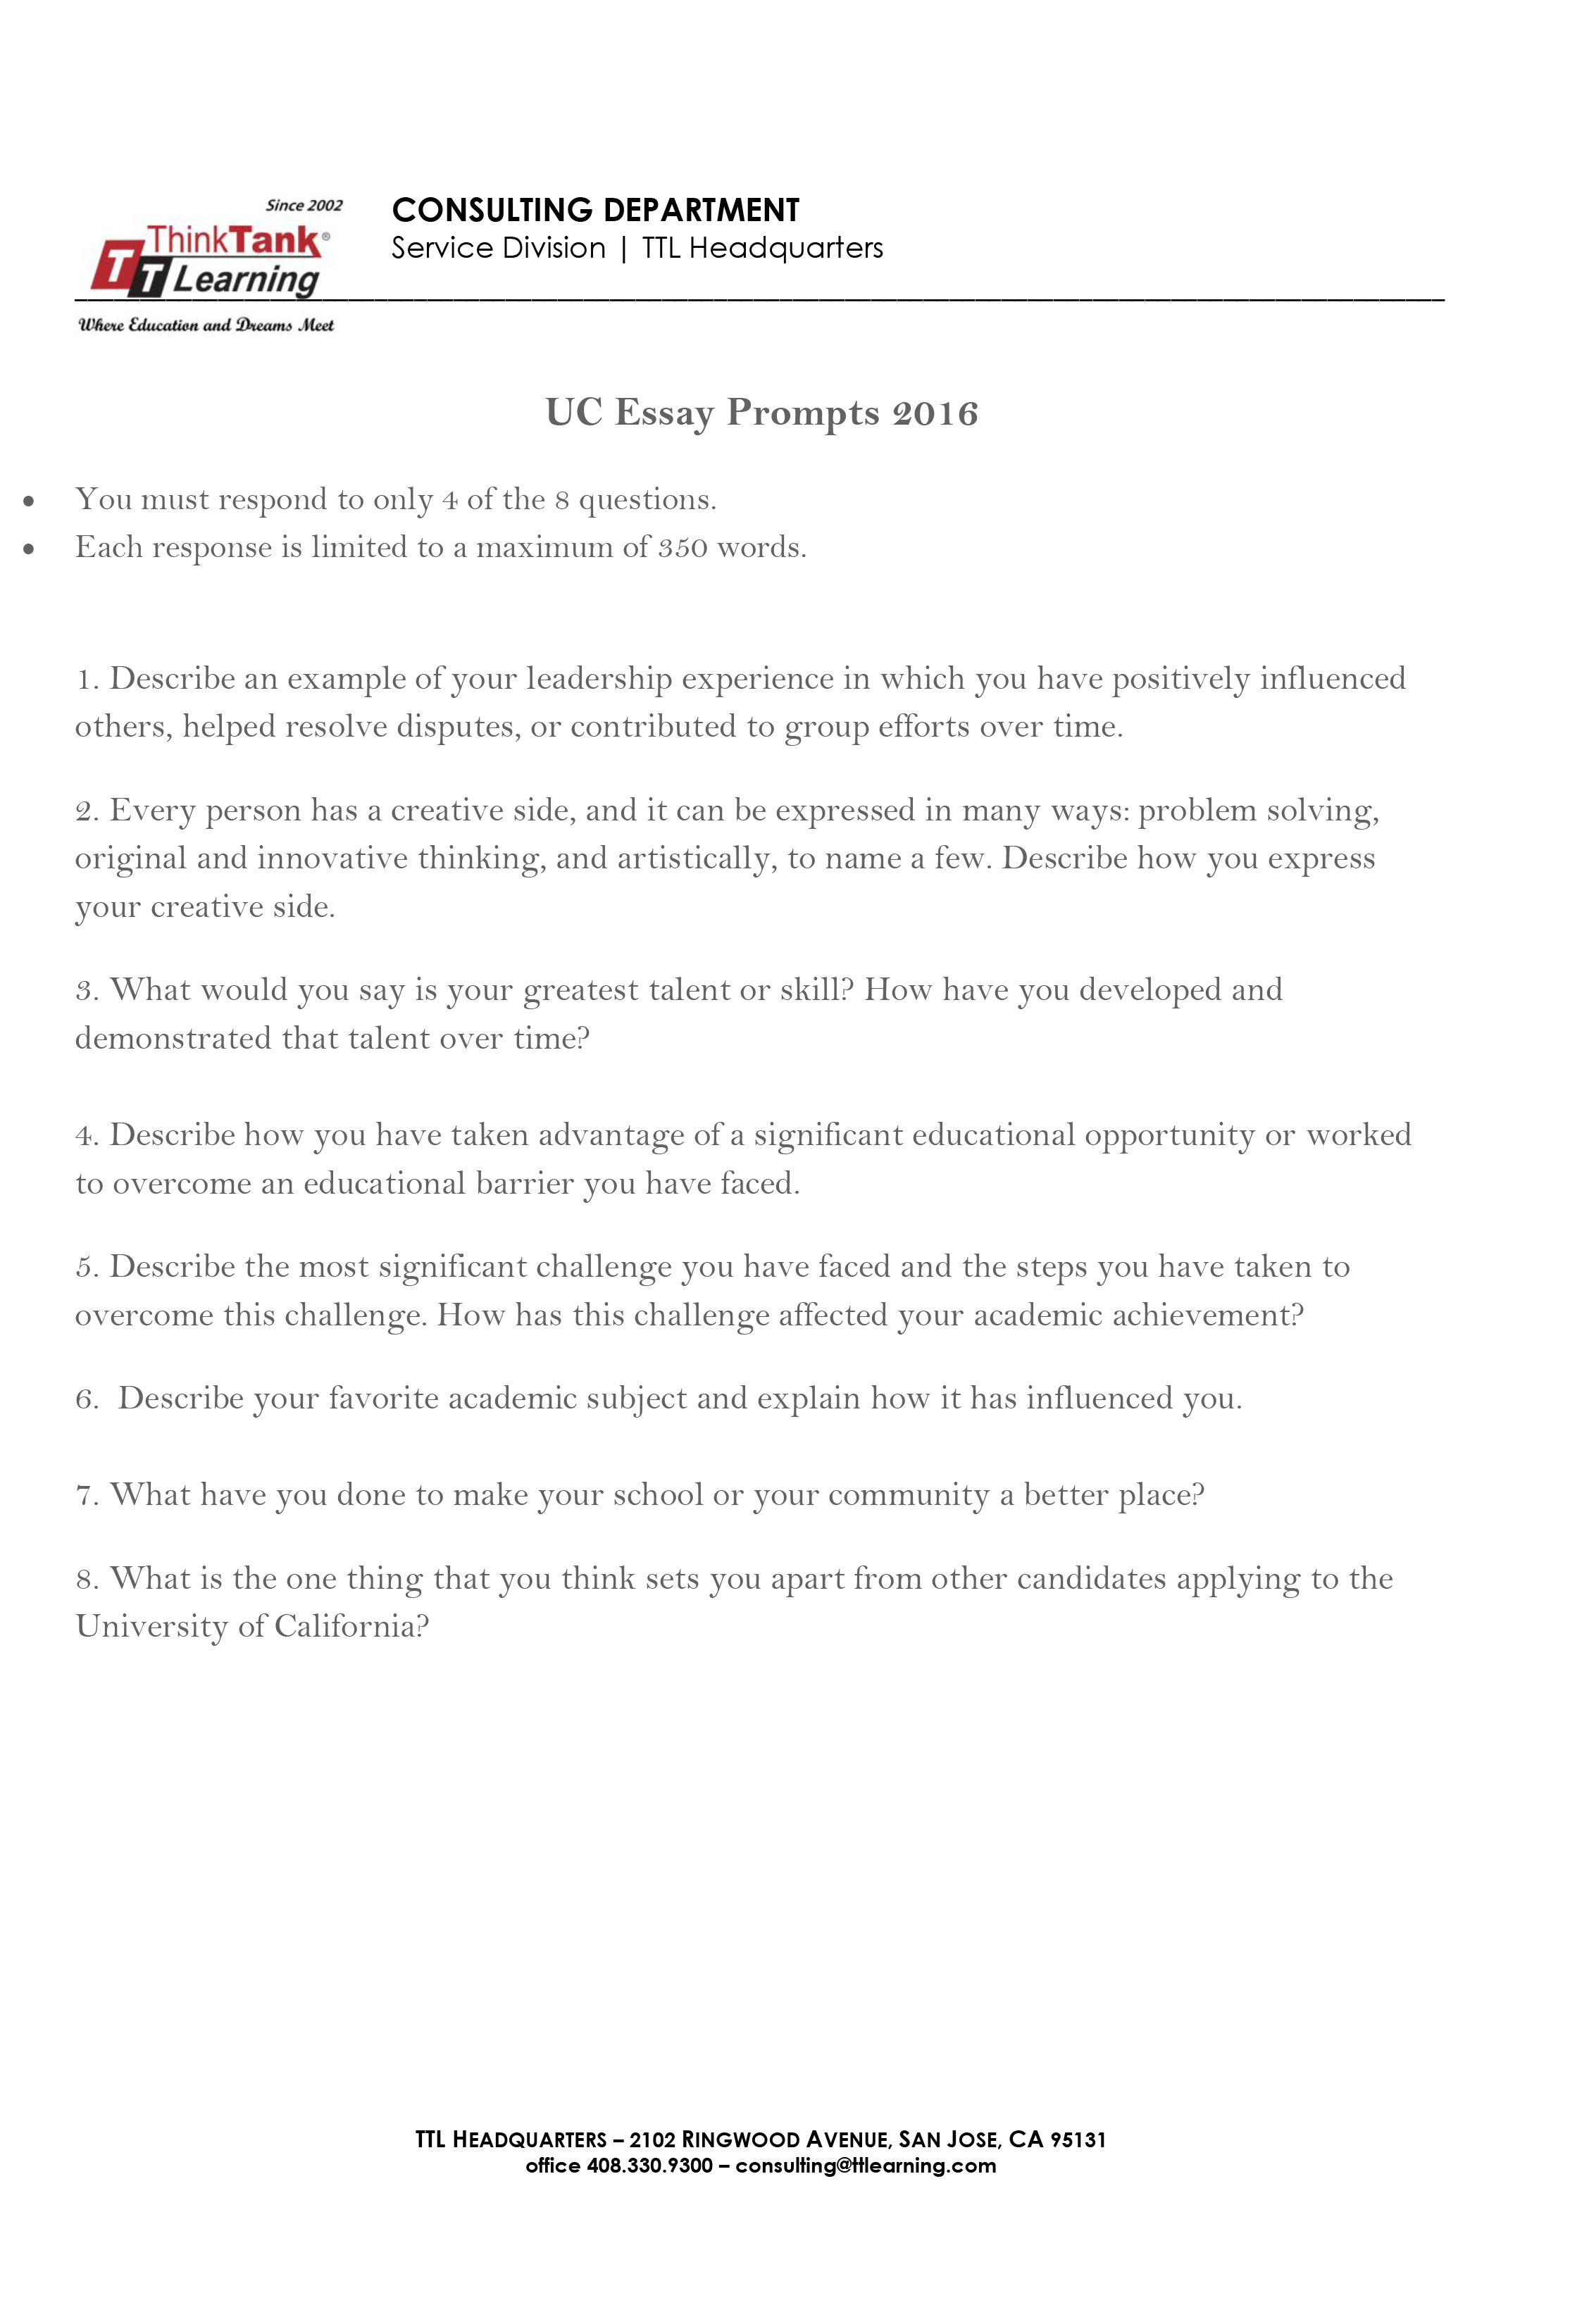 017 Ucla Essay Example Uc Prompts 2016 2